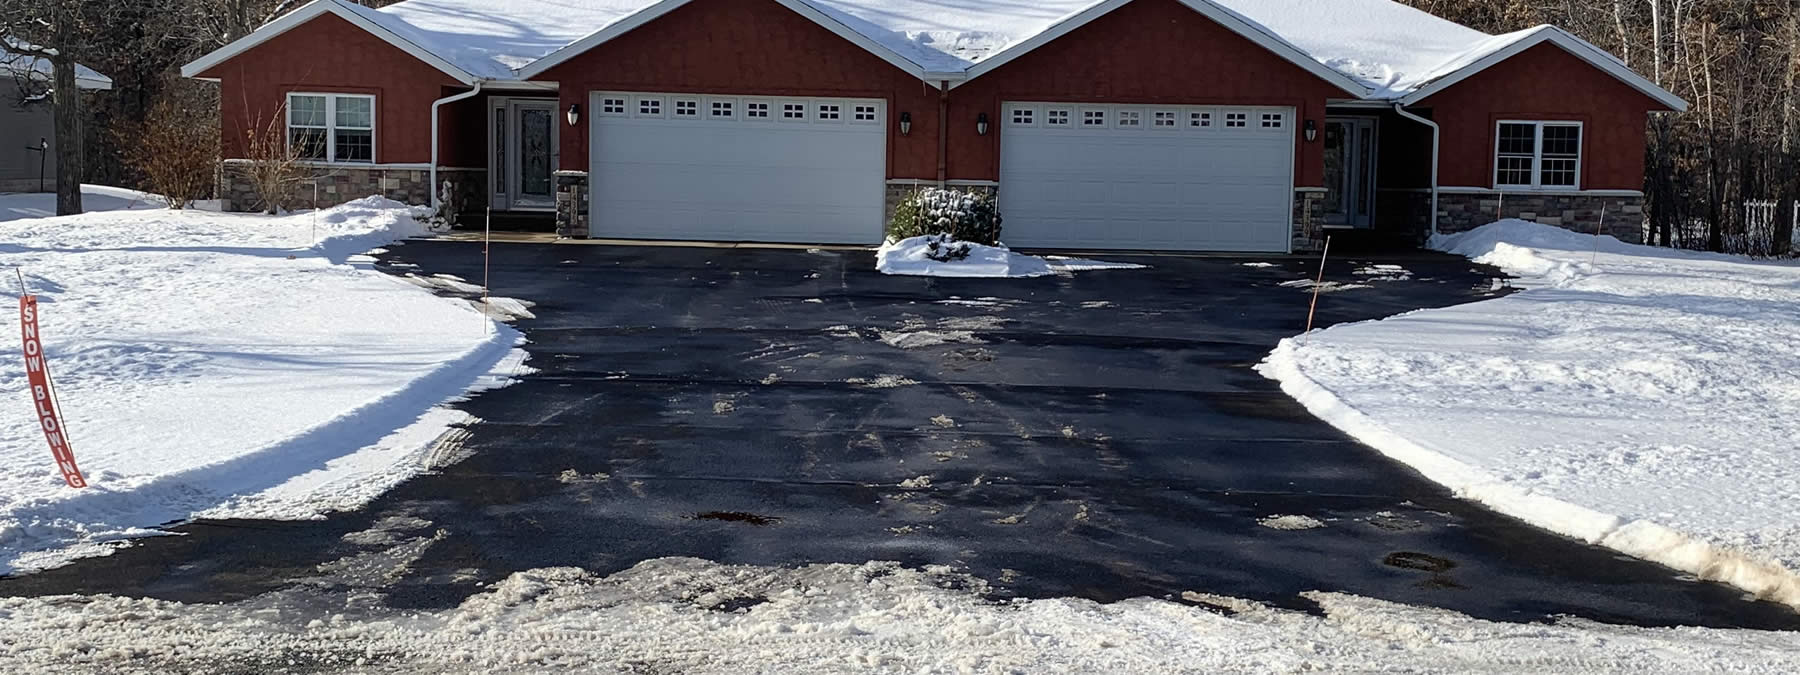 Deicing service for townhomes